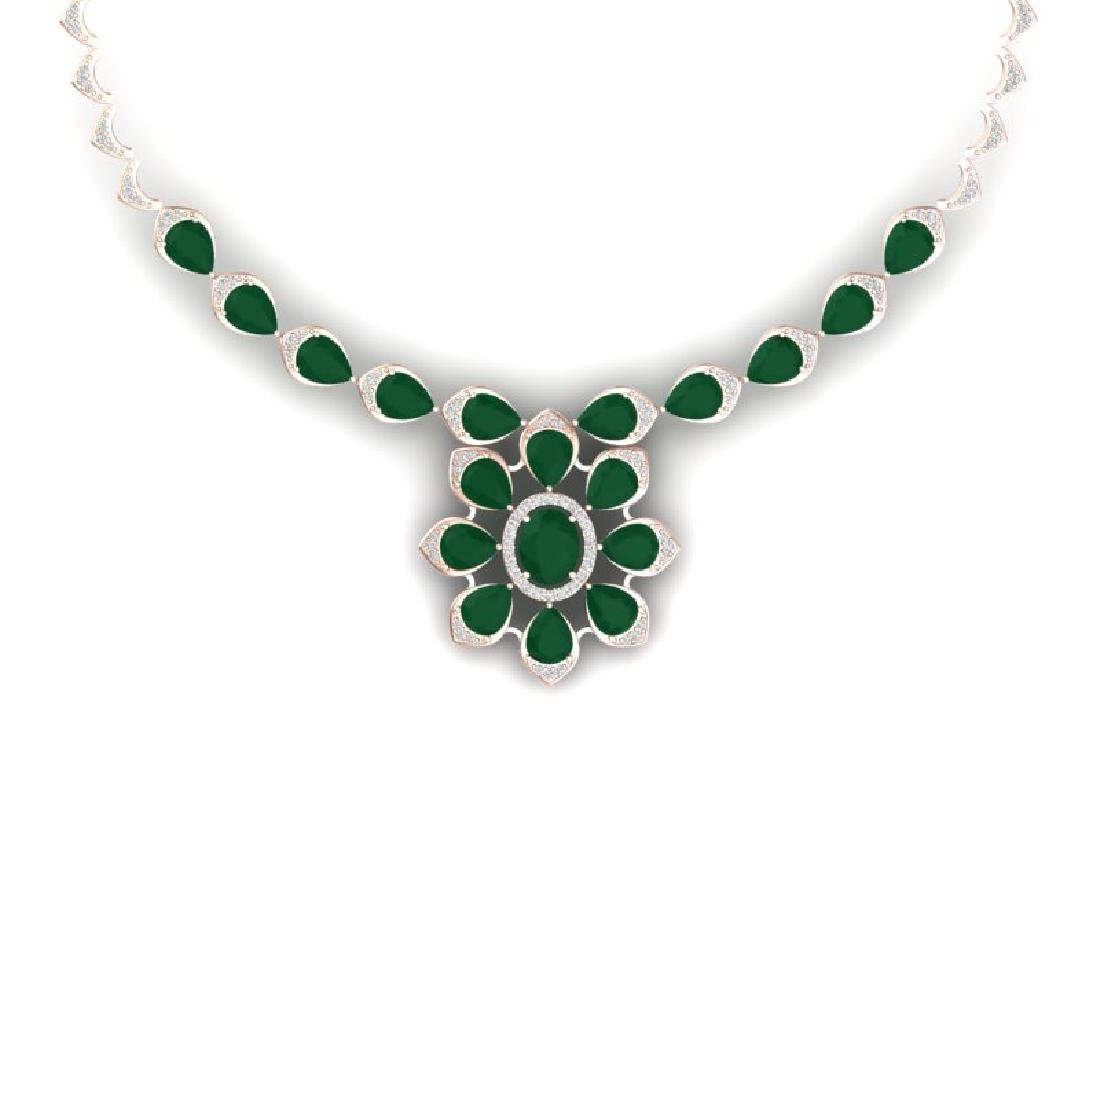 30.70 CTW Royalty Emerald & VS Diamond Necklace 18K